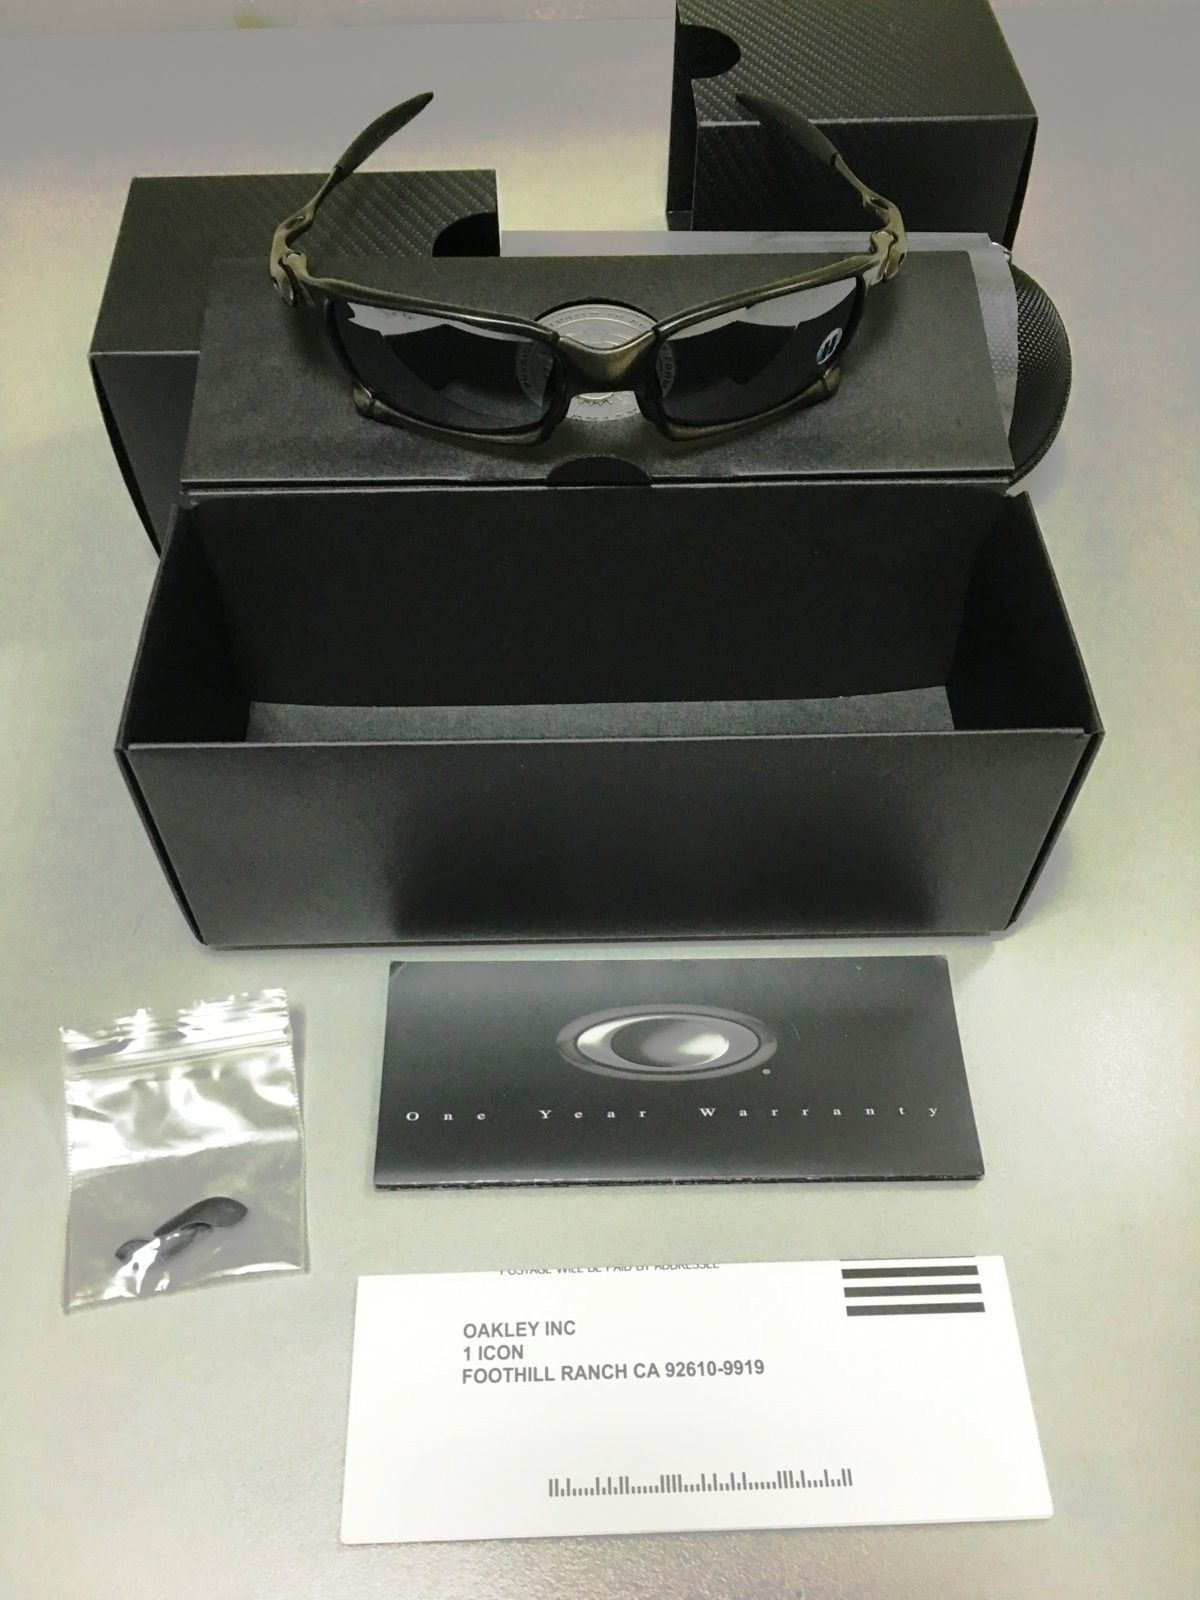 BNIB XS Carbon with BI all in USD 450 - image_36.jpeg